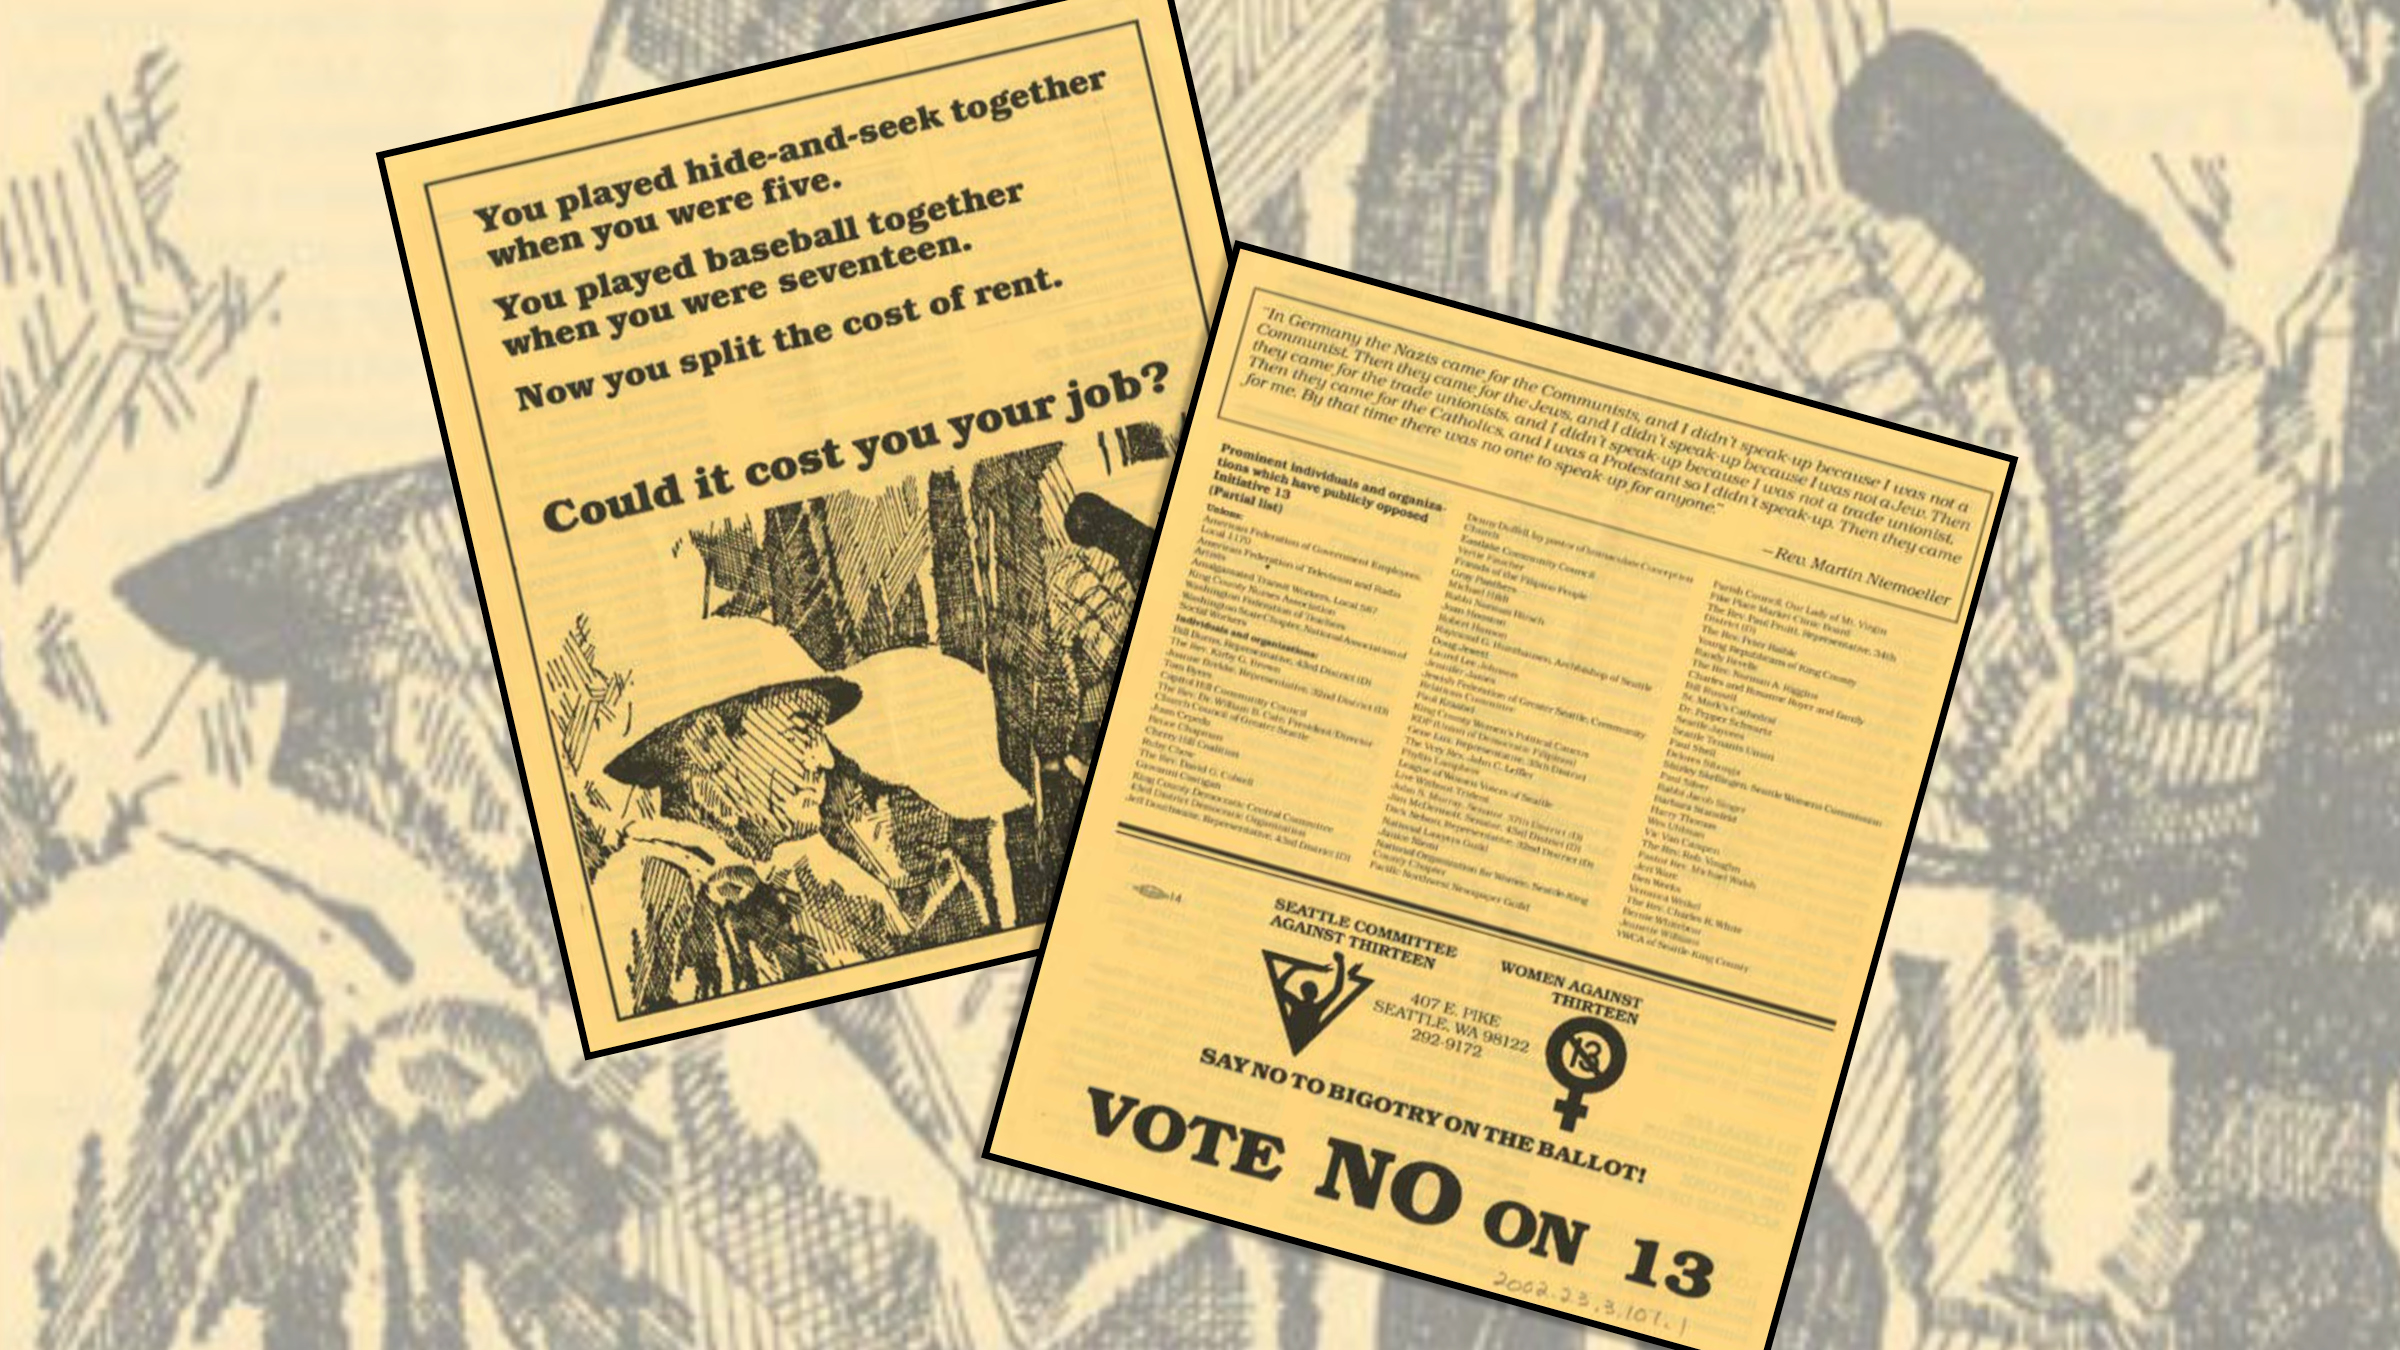 History Café: Revisiting Initiative 13 And LGBT Activism In The 70s